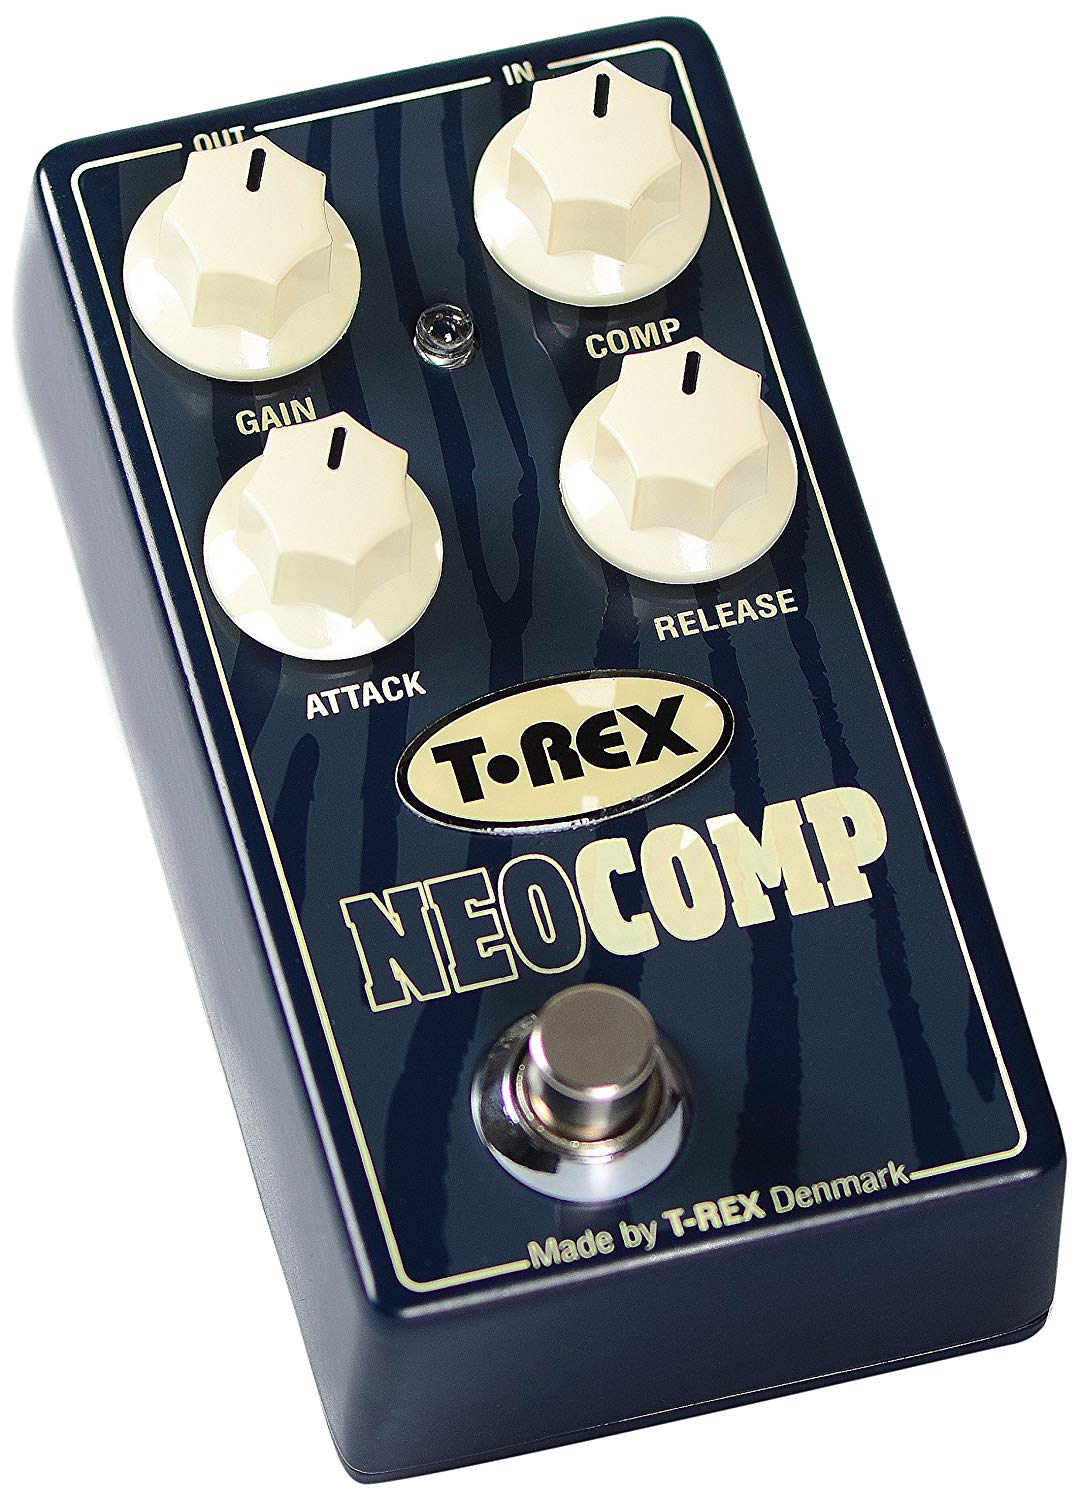 T-Rex Engineering NEOCOMP Compressor Guitar Effects Pedal with Premium, Studio-Grade Compression; Includes Gain, Comp, Attack, and Release Controls (10096)